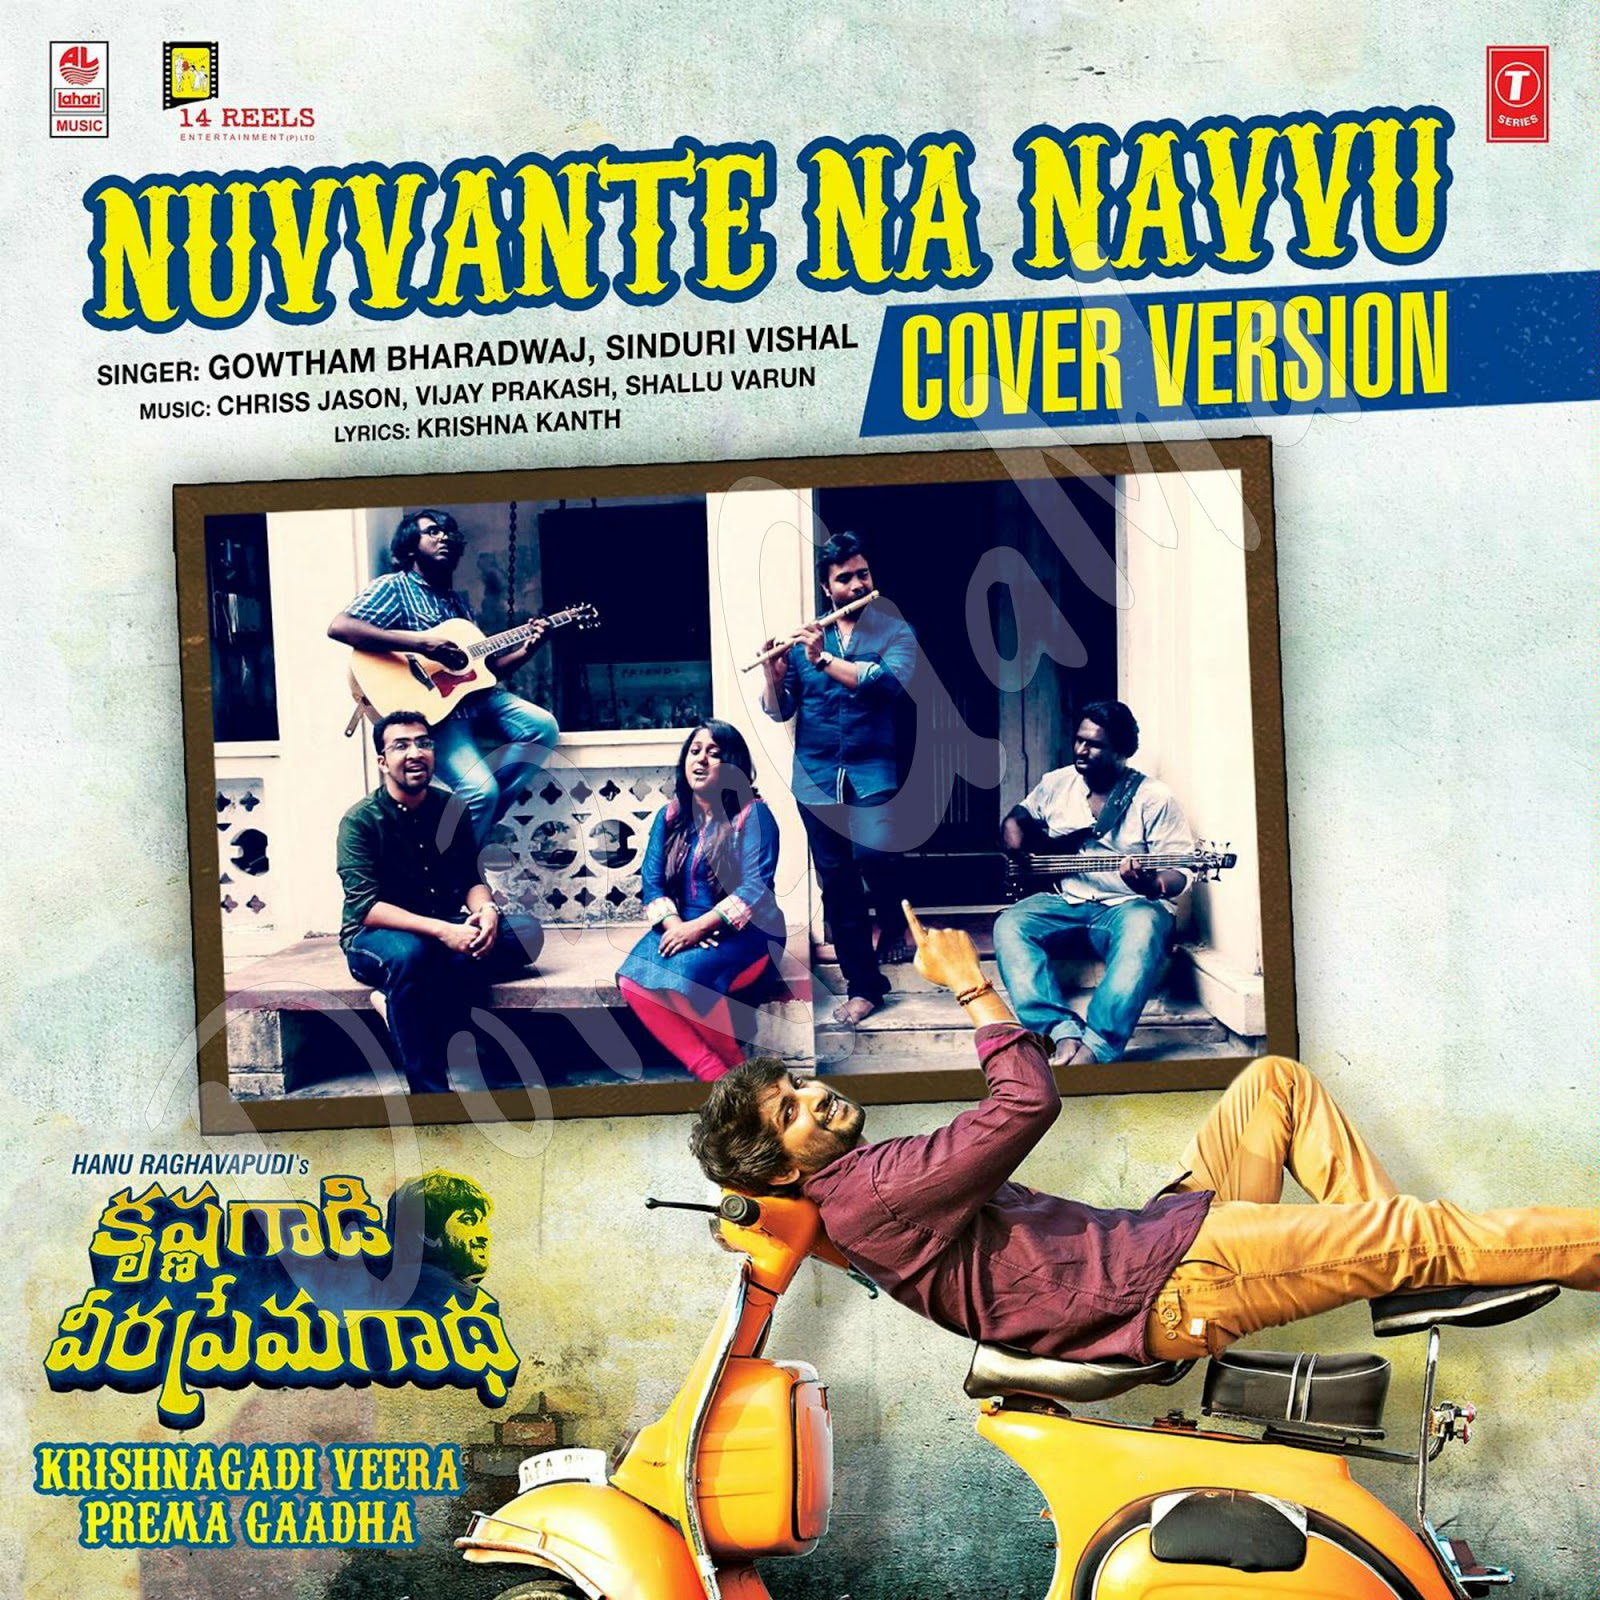 Nuvvante-Na-Navvu-%2528Cover-Version%2529--Single-CD-Front-Cover-Poster-Wallpaper-HD